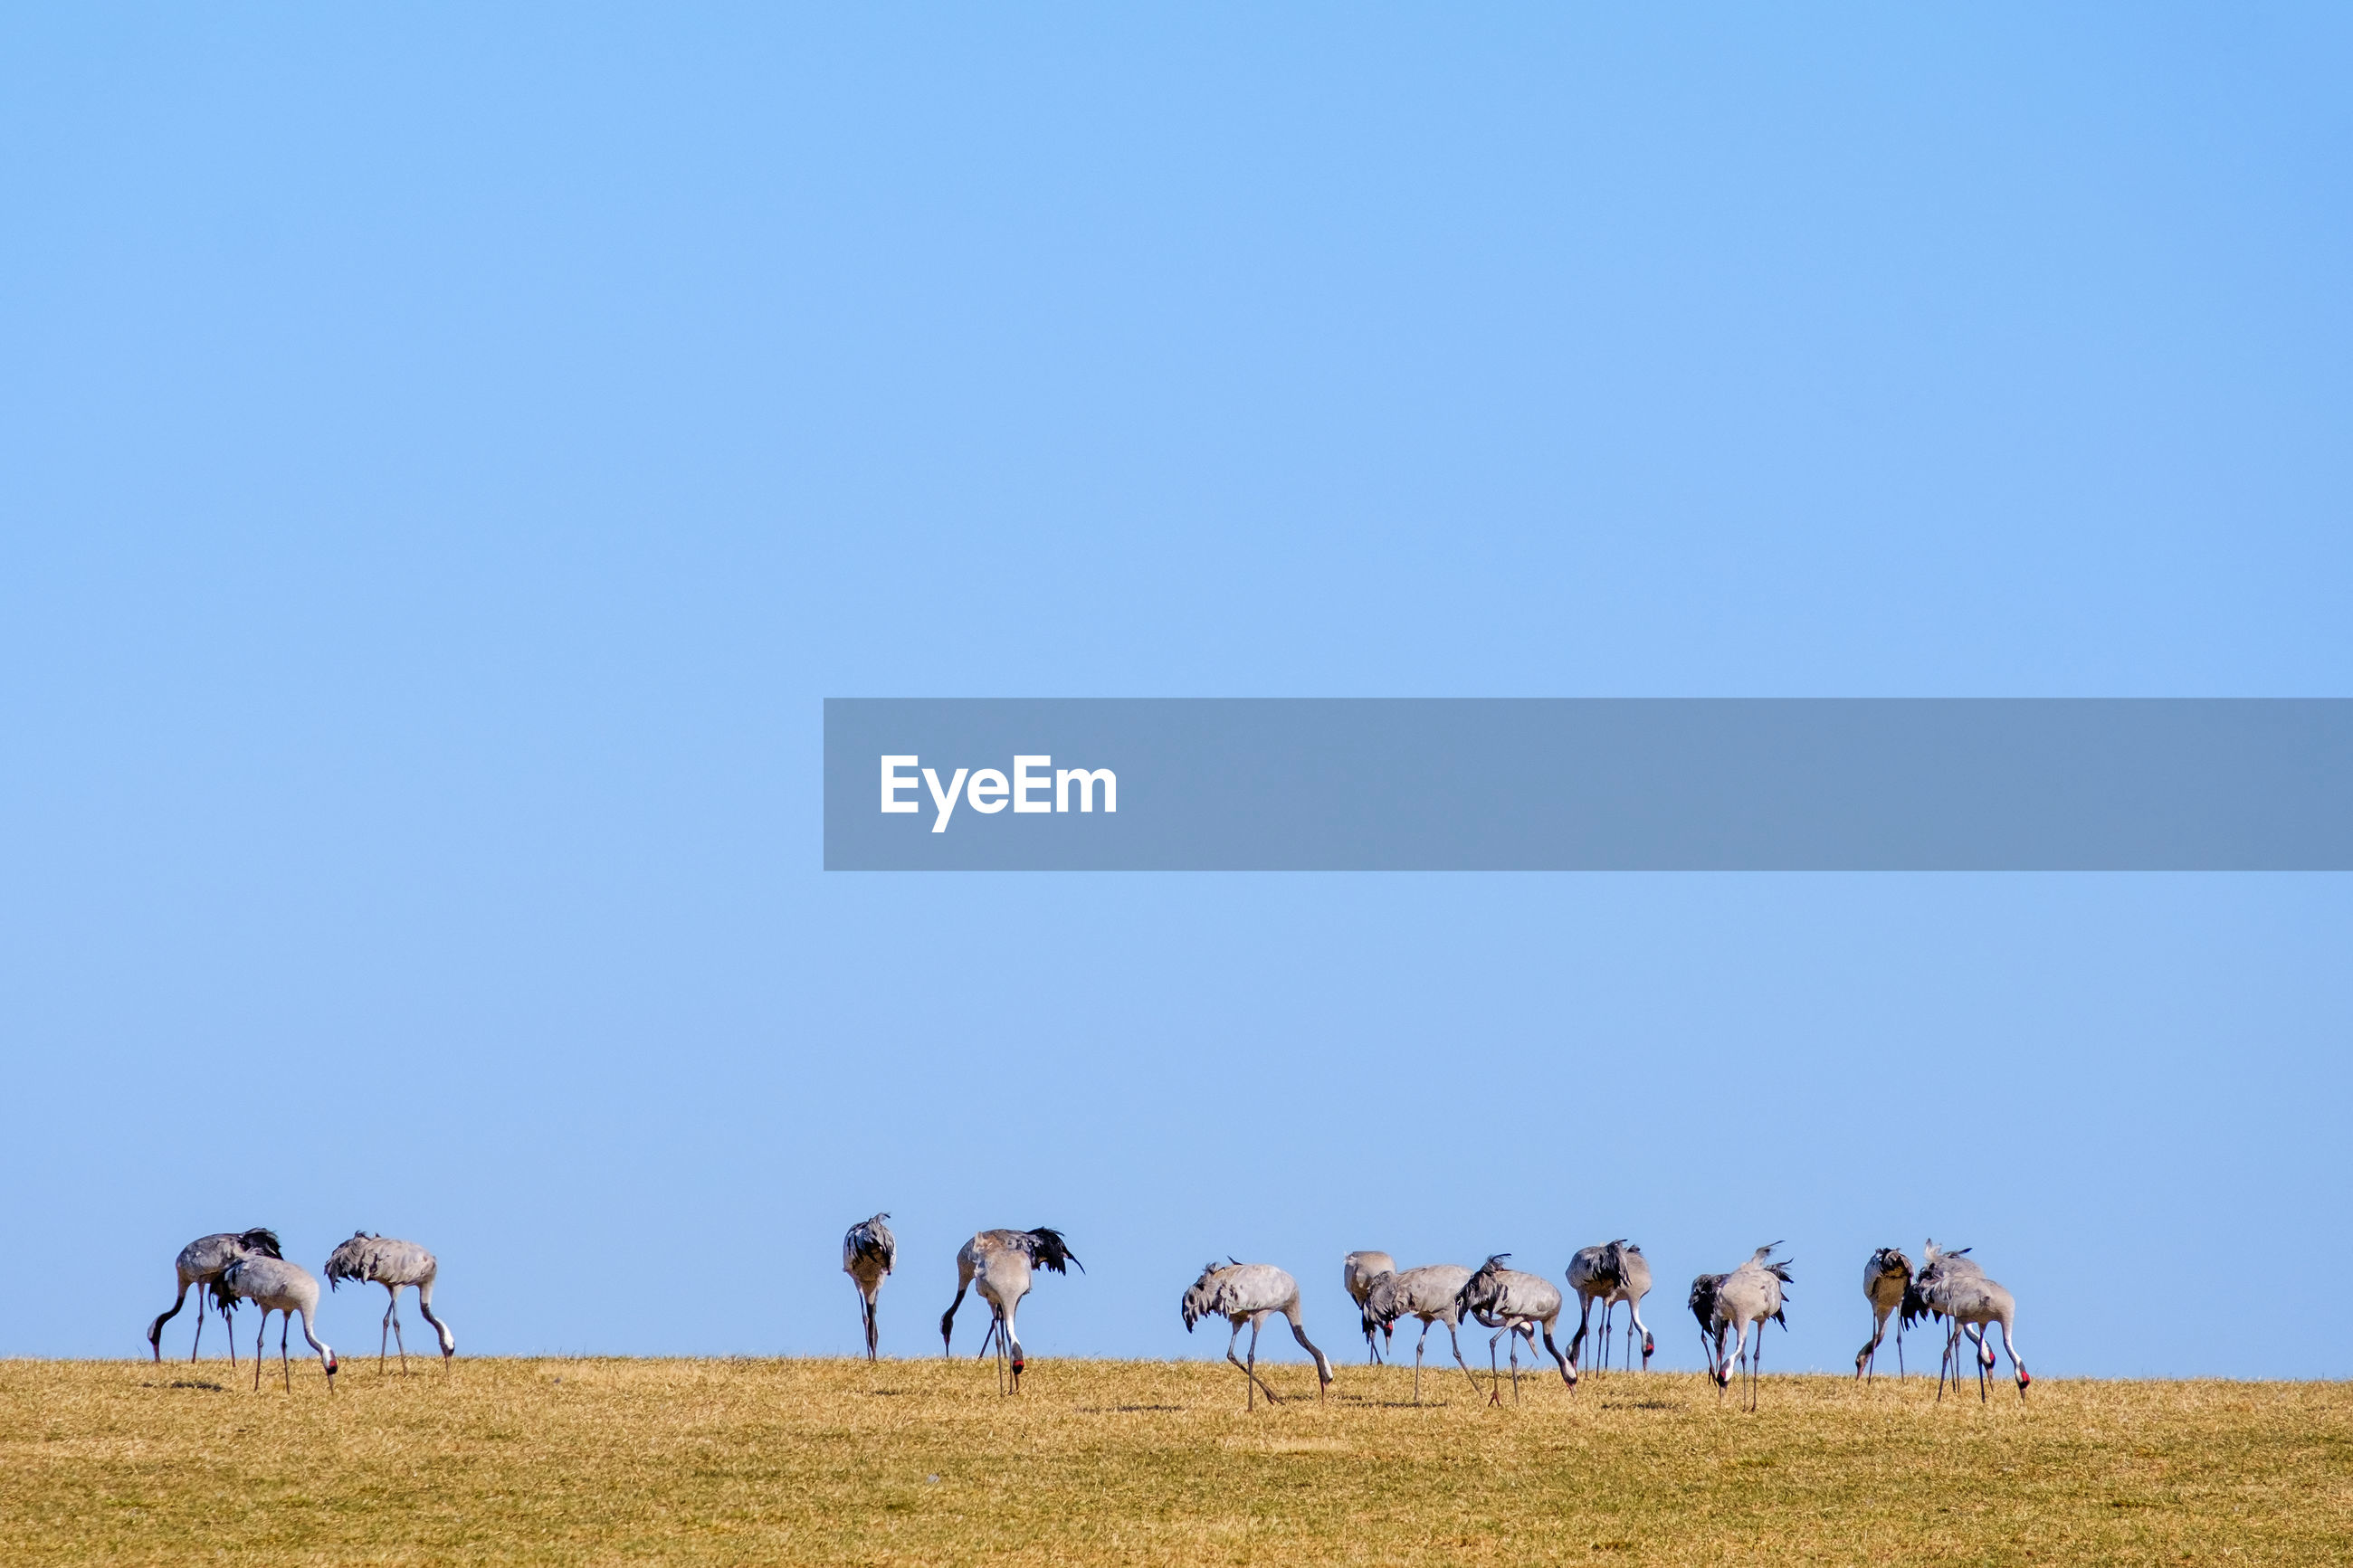 European cranes walking in a field and eating